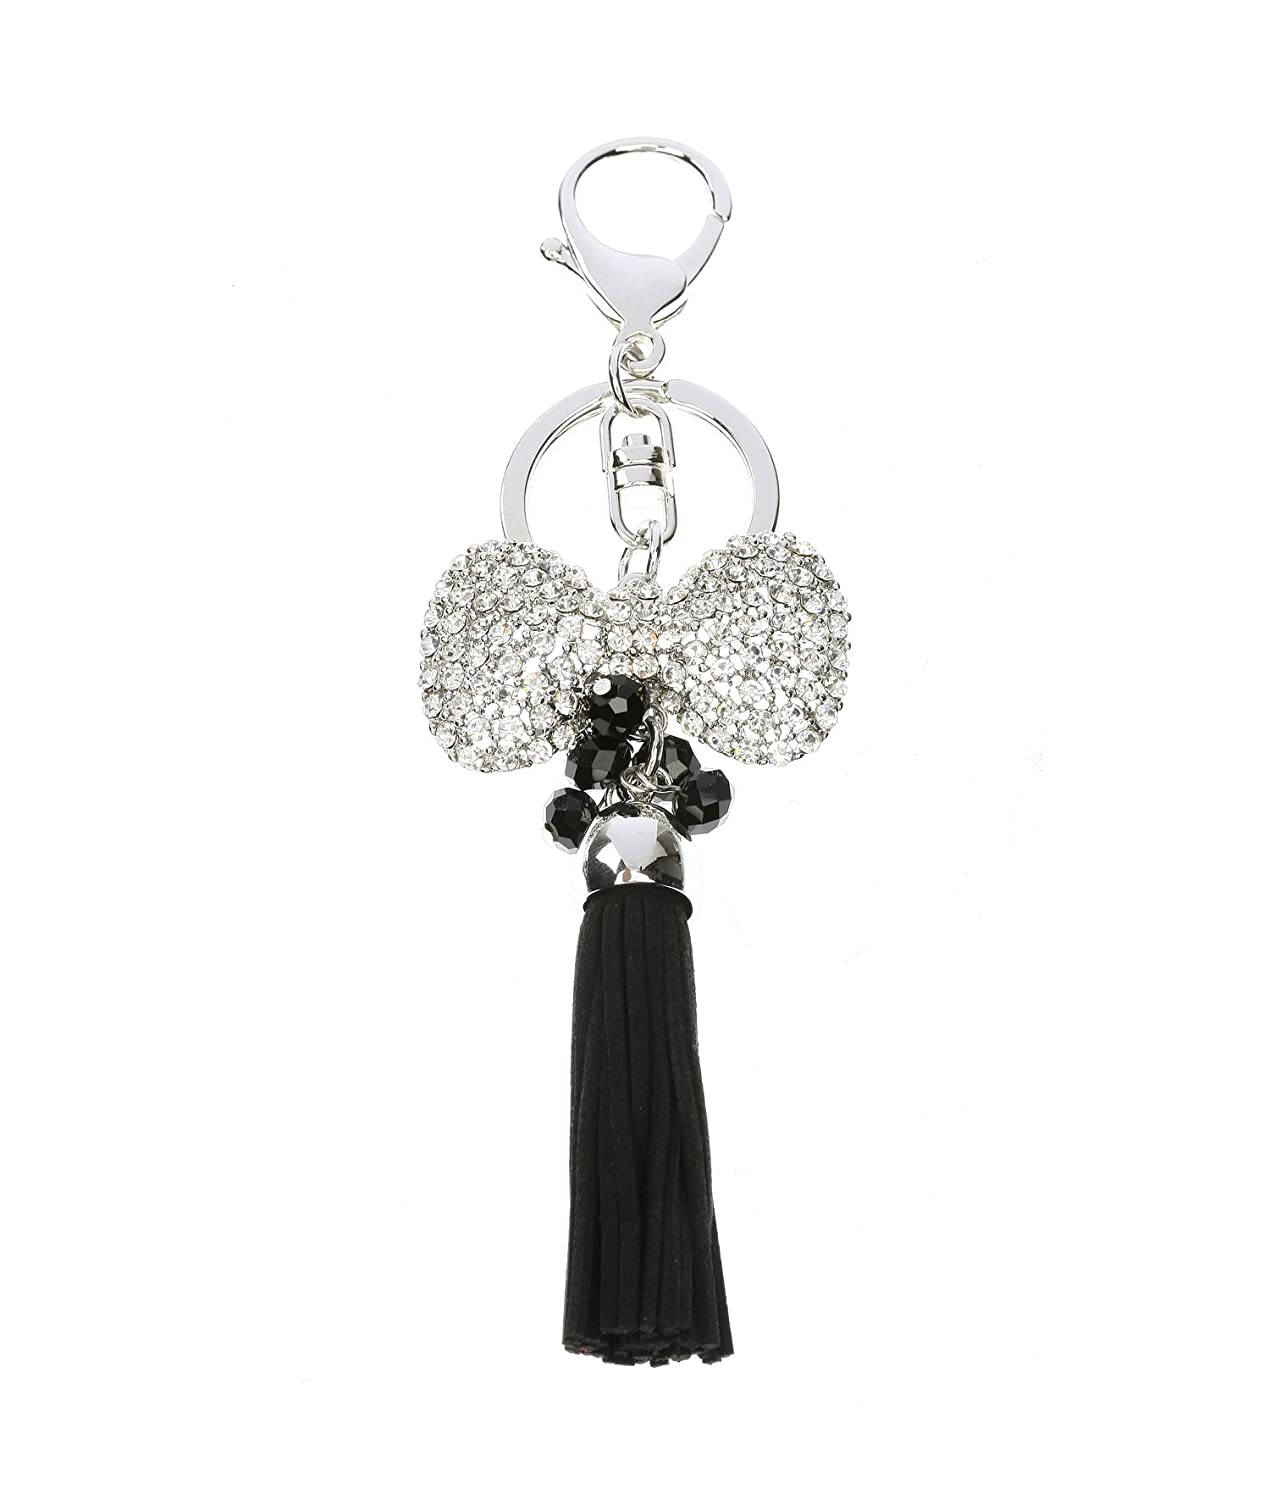 Bow and Tassle Keychain Encrusted with Rhinesotnes